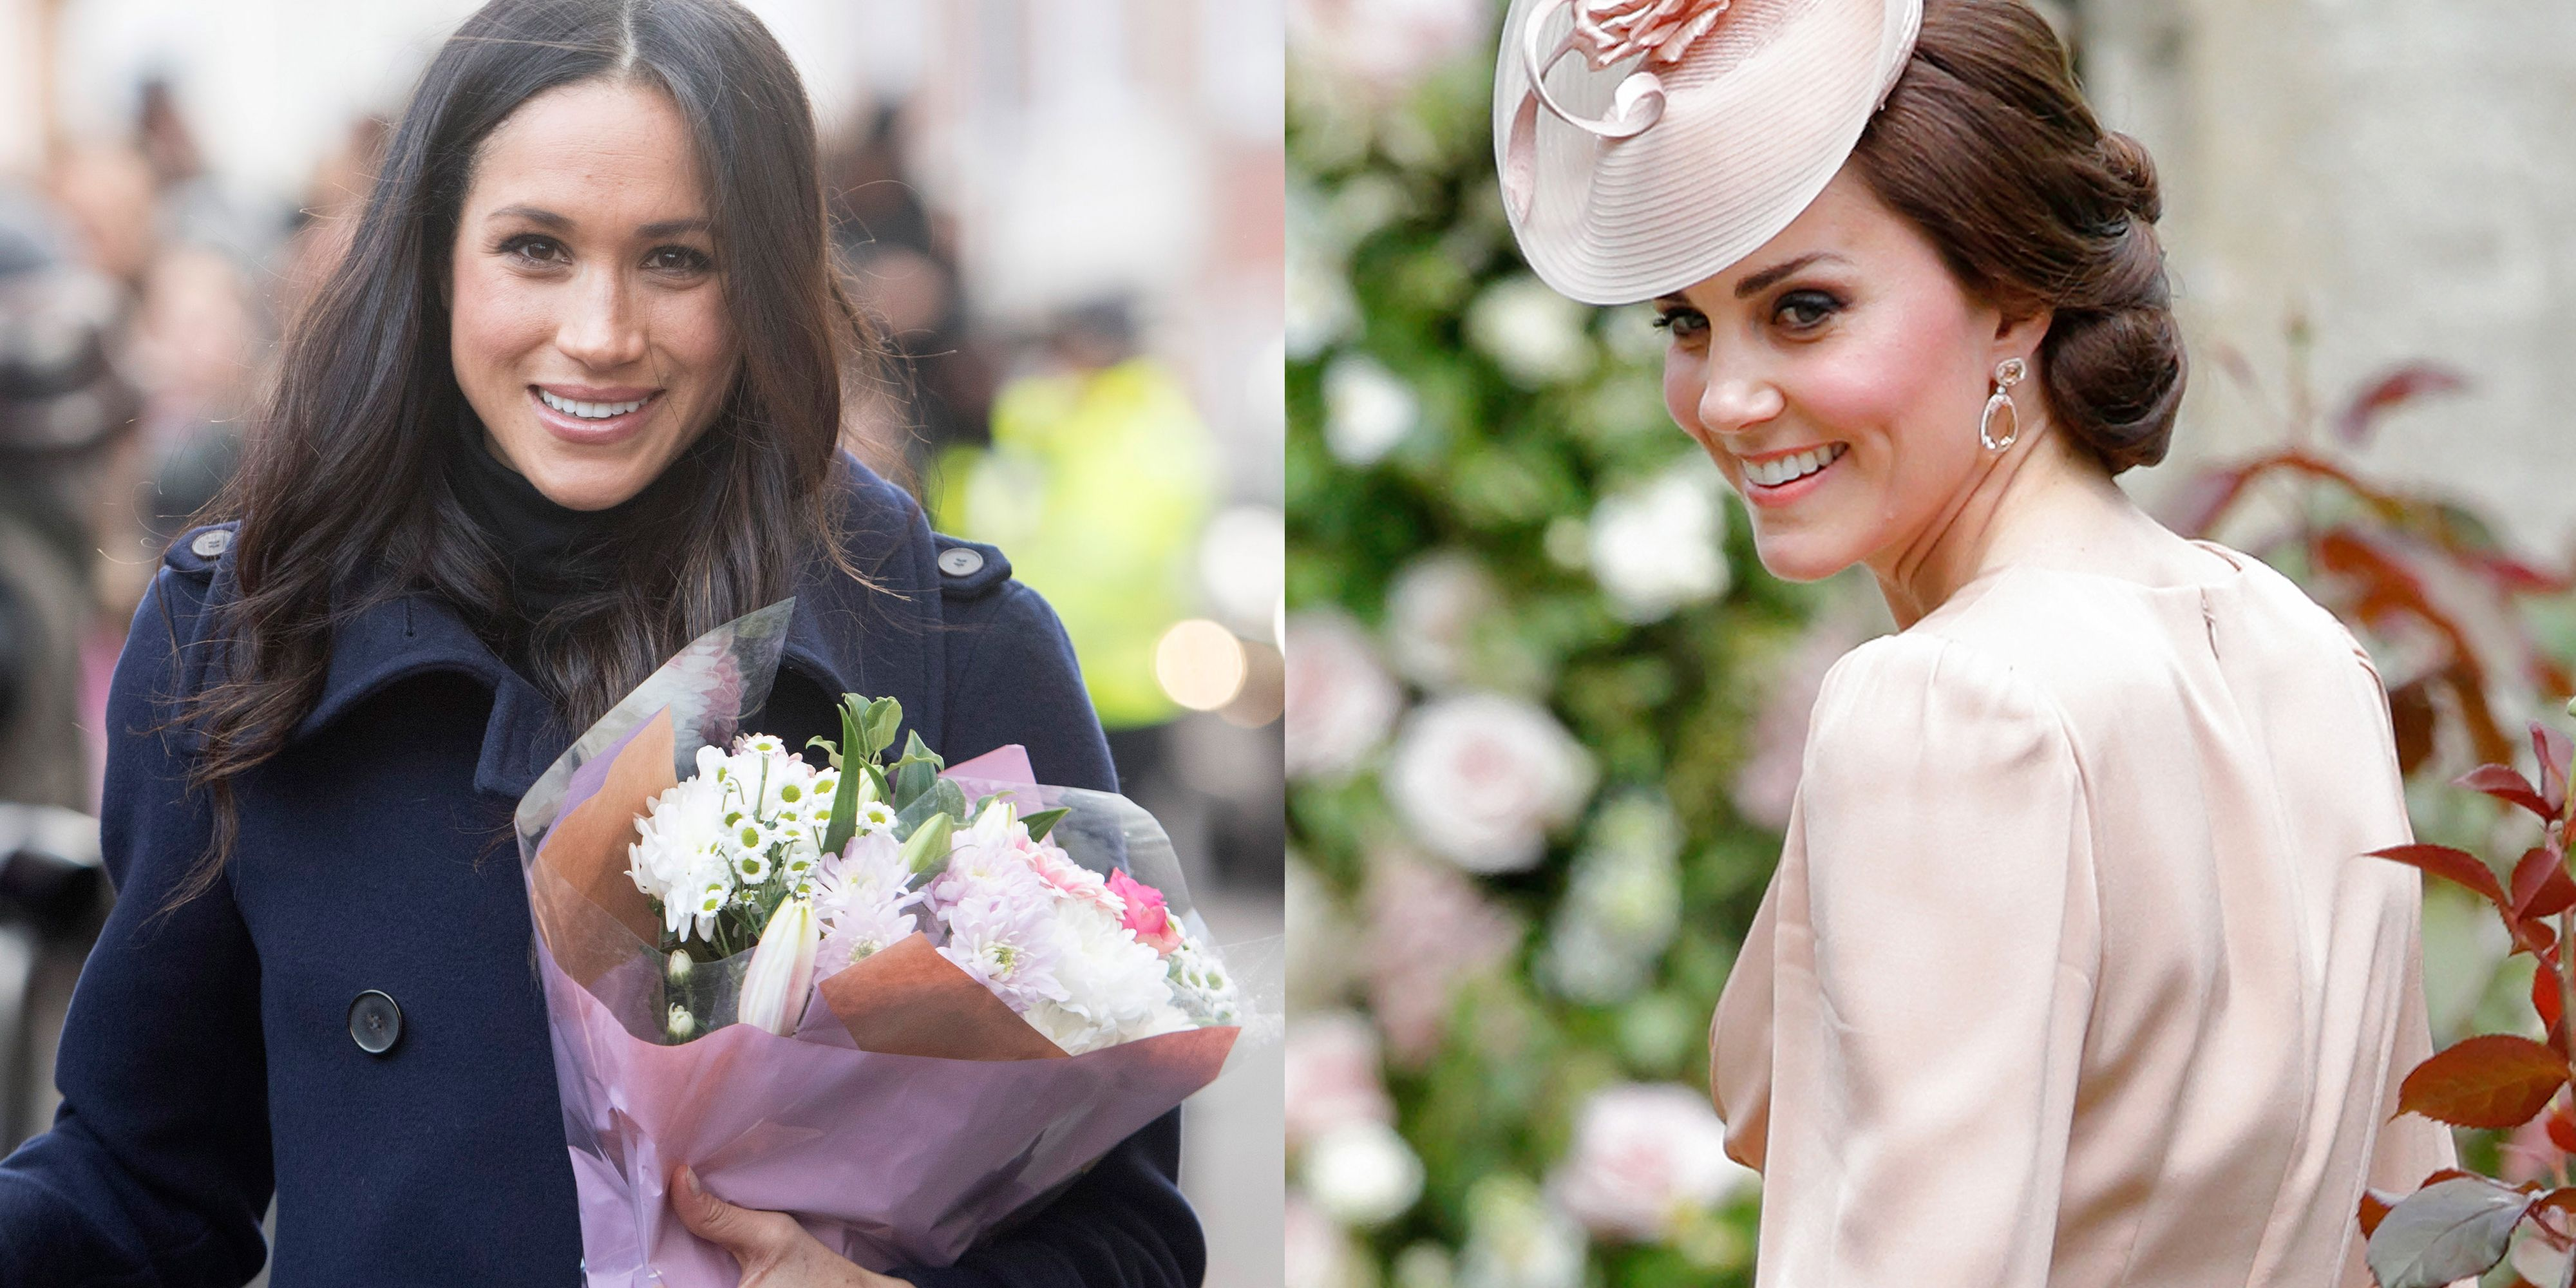 Will Kate Middleton Be Meghan's Bridesmaid? - Kate